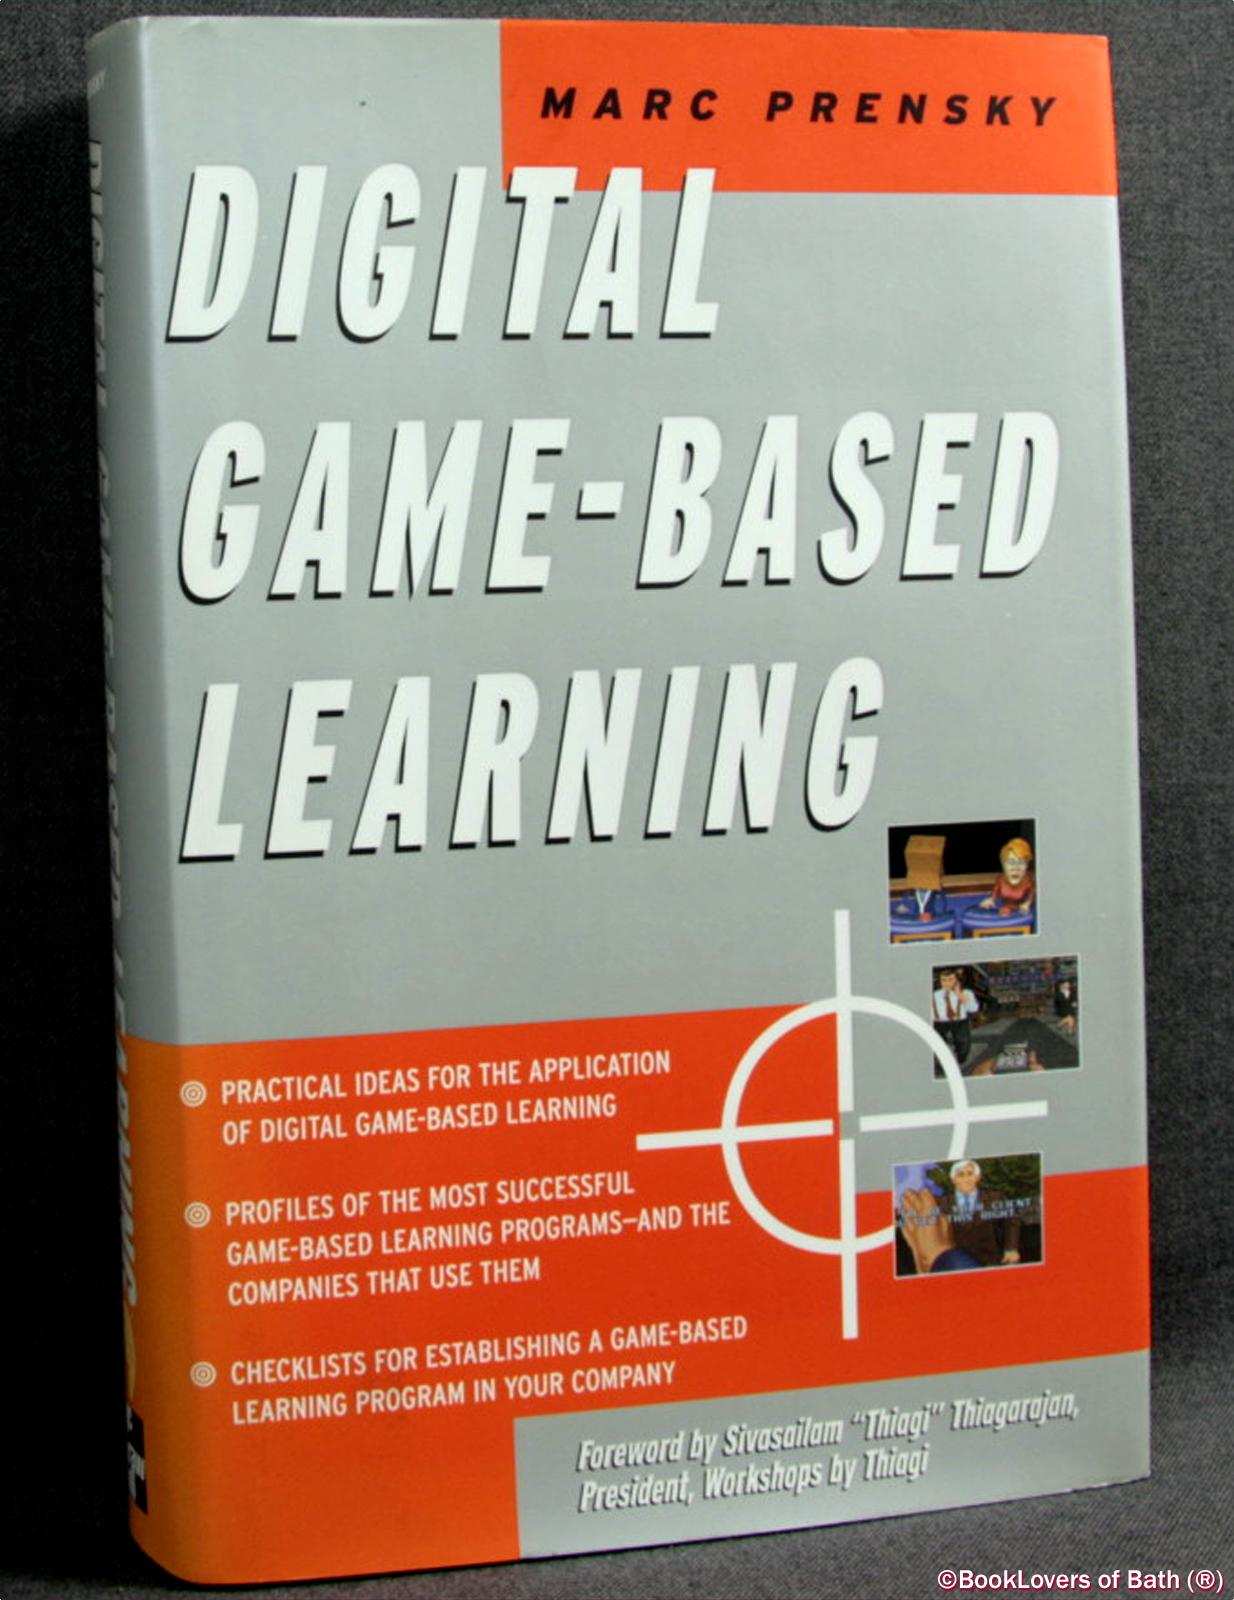 Digital Game-based Learning - Marc Prensky